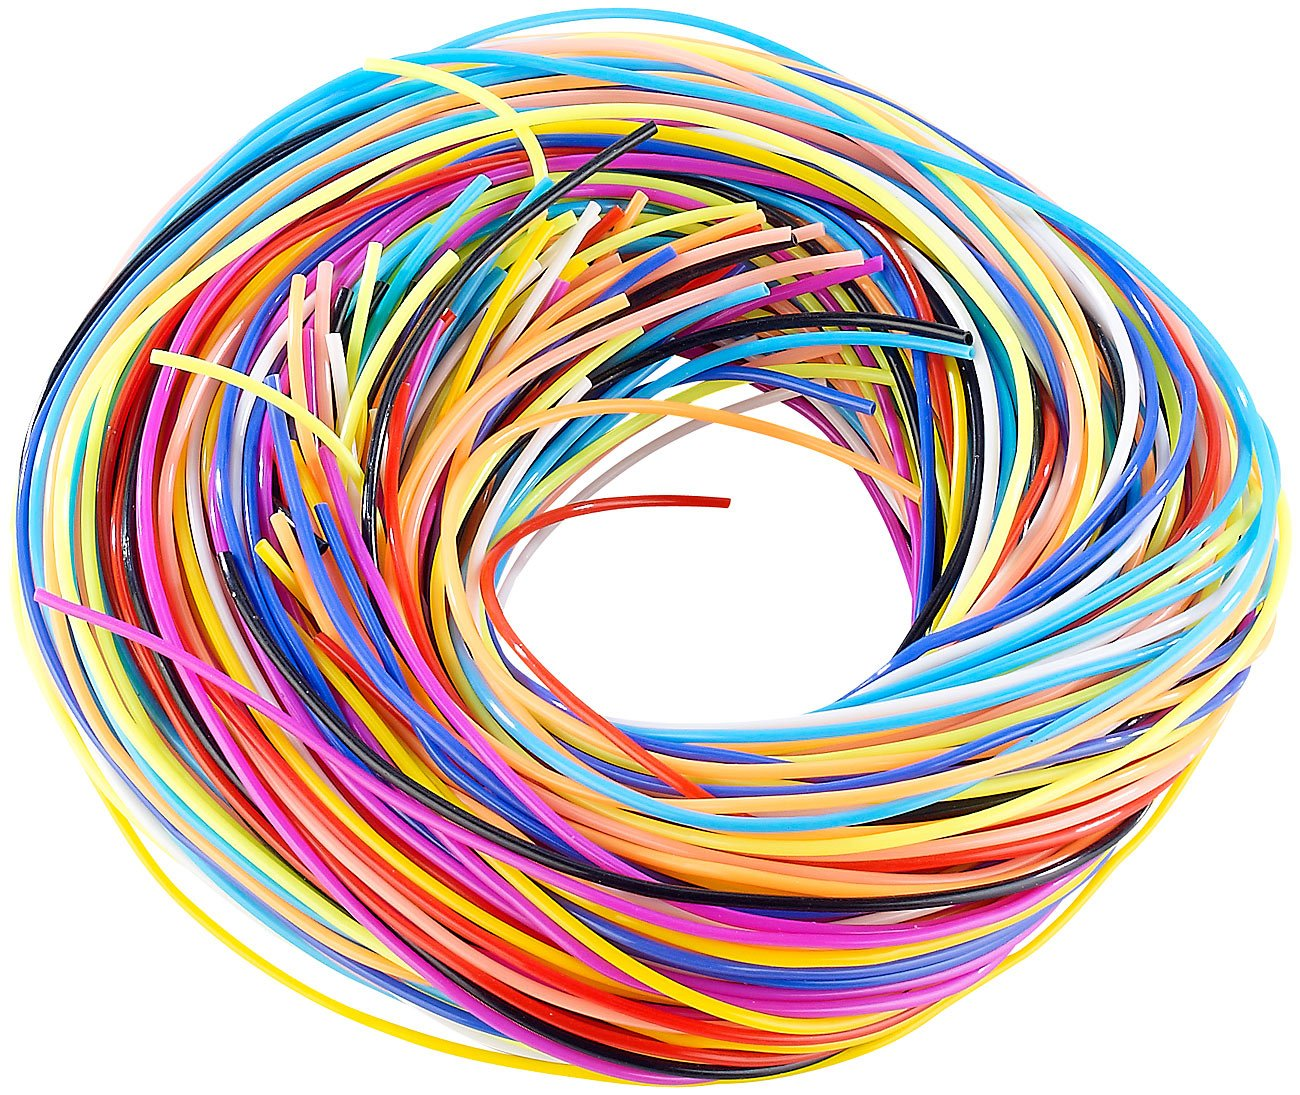 Playtastic Scoubidou Craft Set with 96x Knotting Bands in 10 Colours OfficeCentre